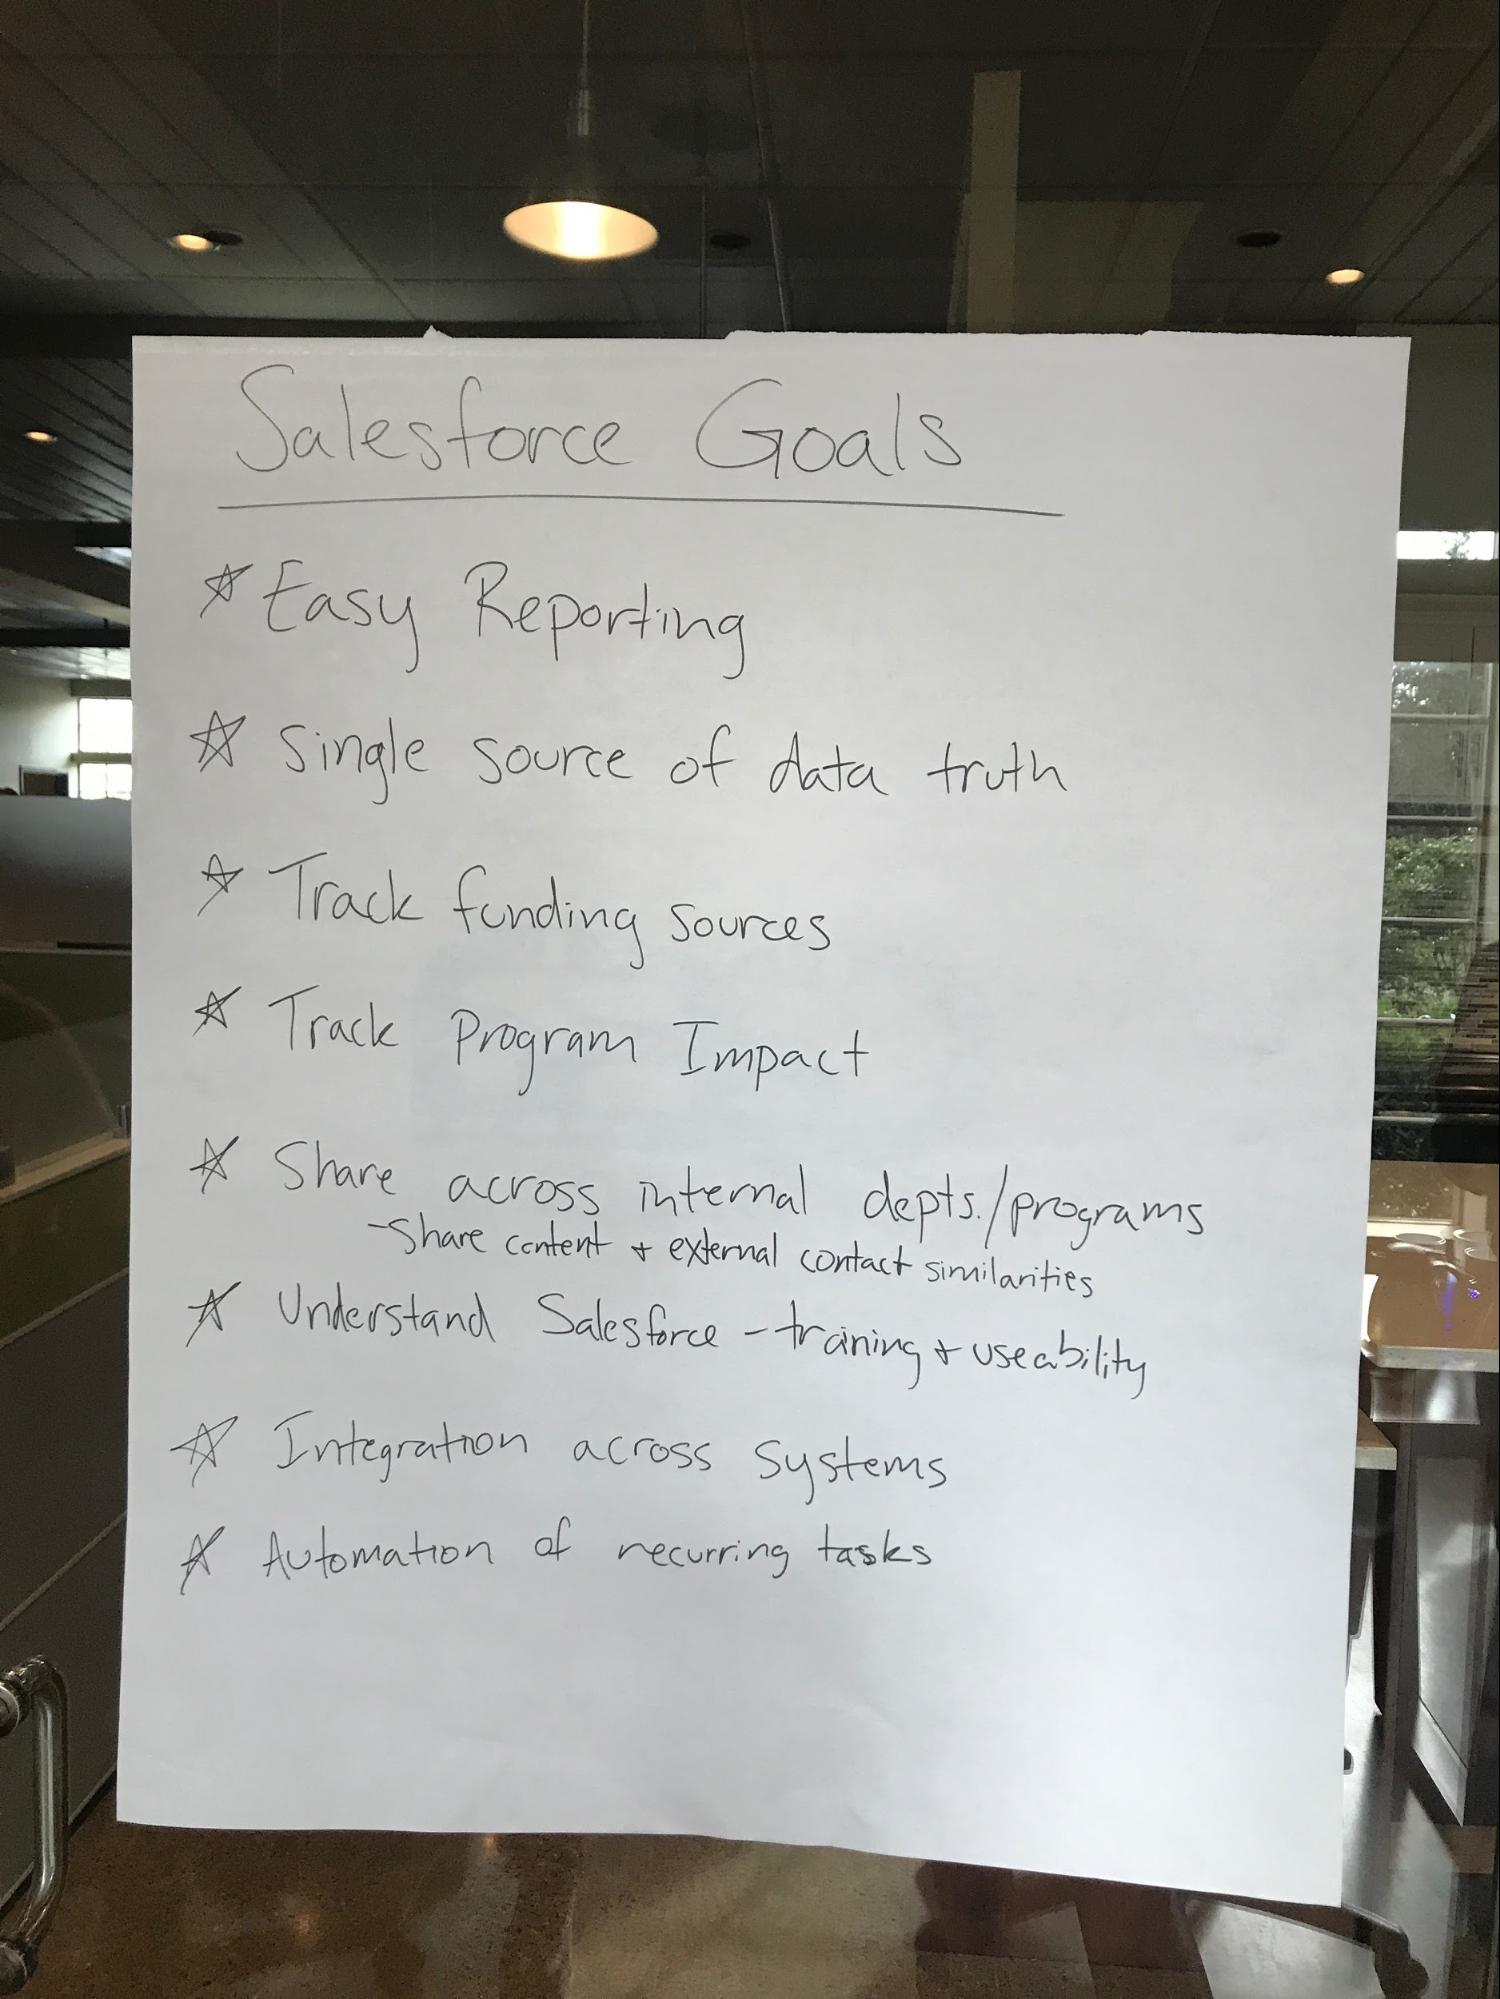 goals from an in person on site discovery for Salesforce projects